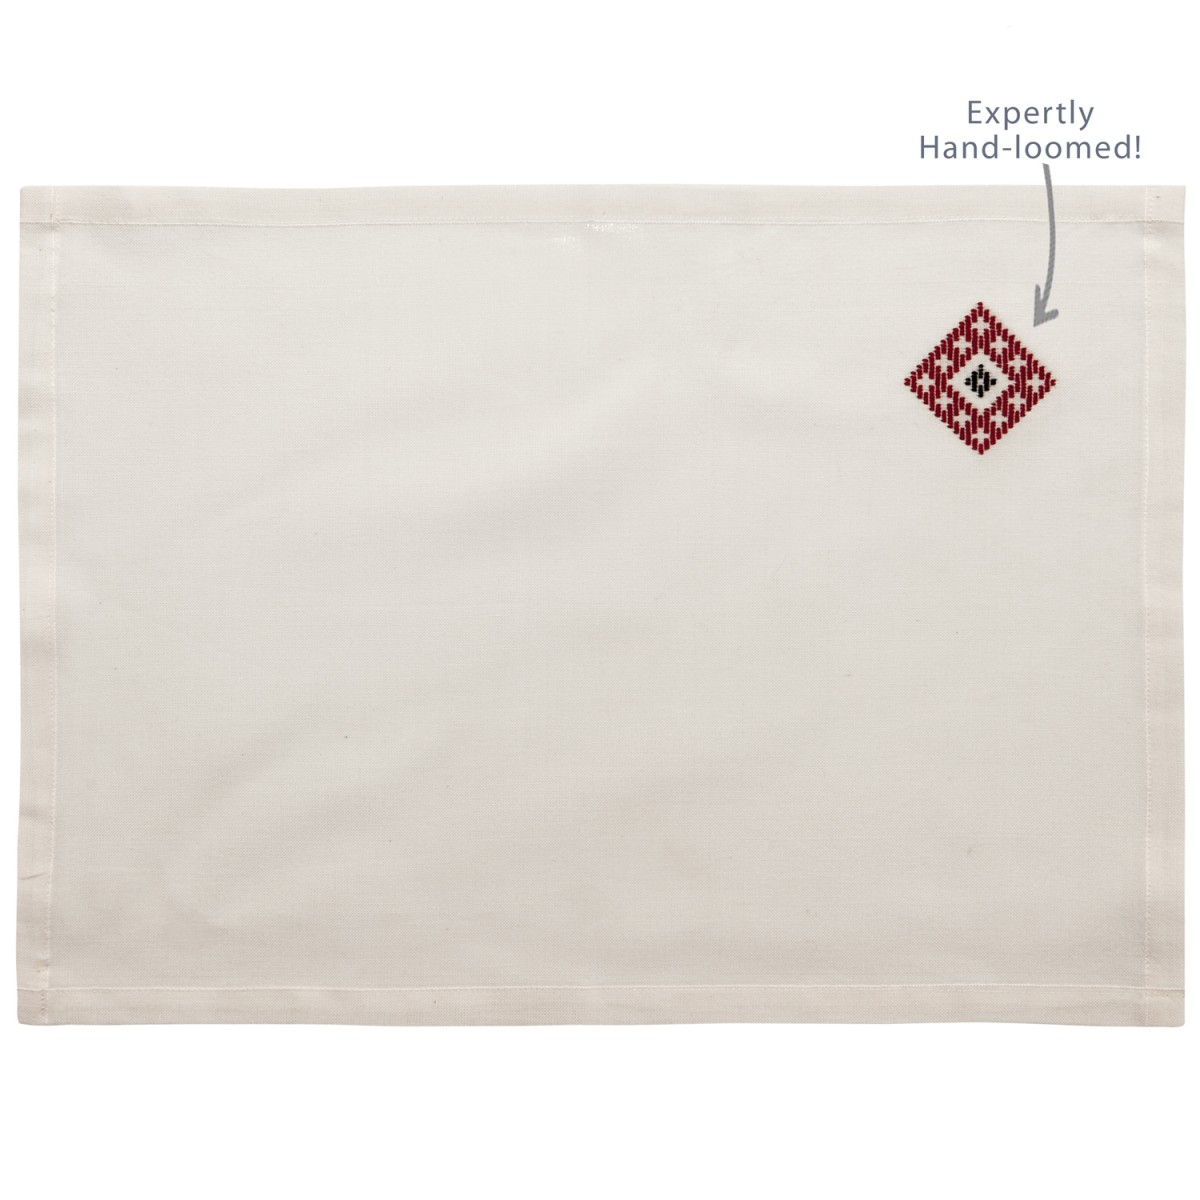 Cotton Placemat Handloomed Rhombus-1